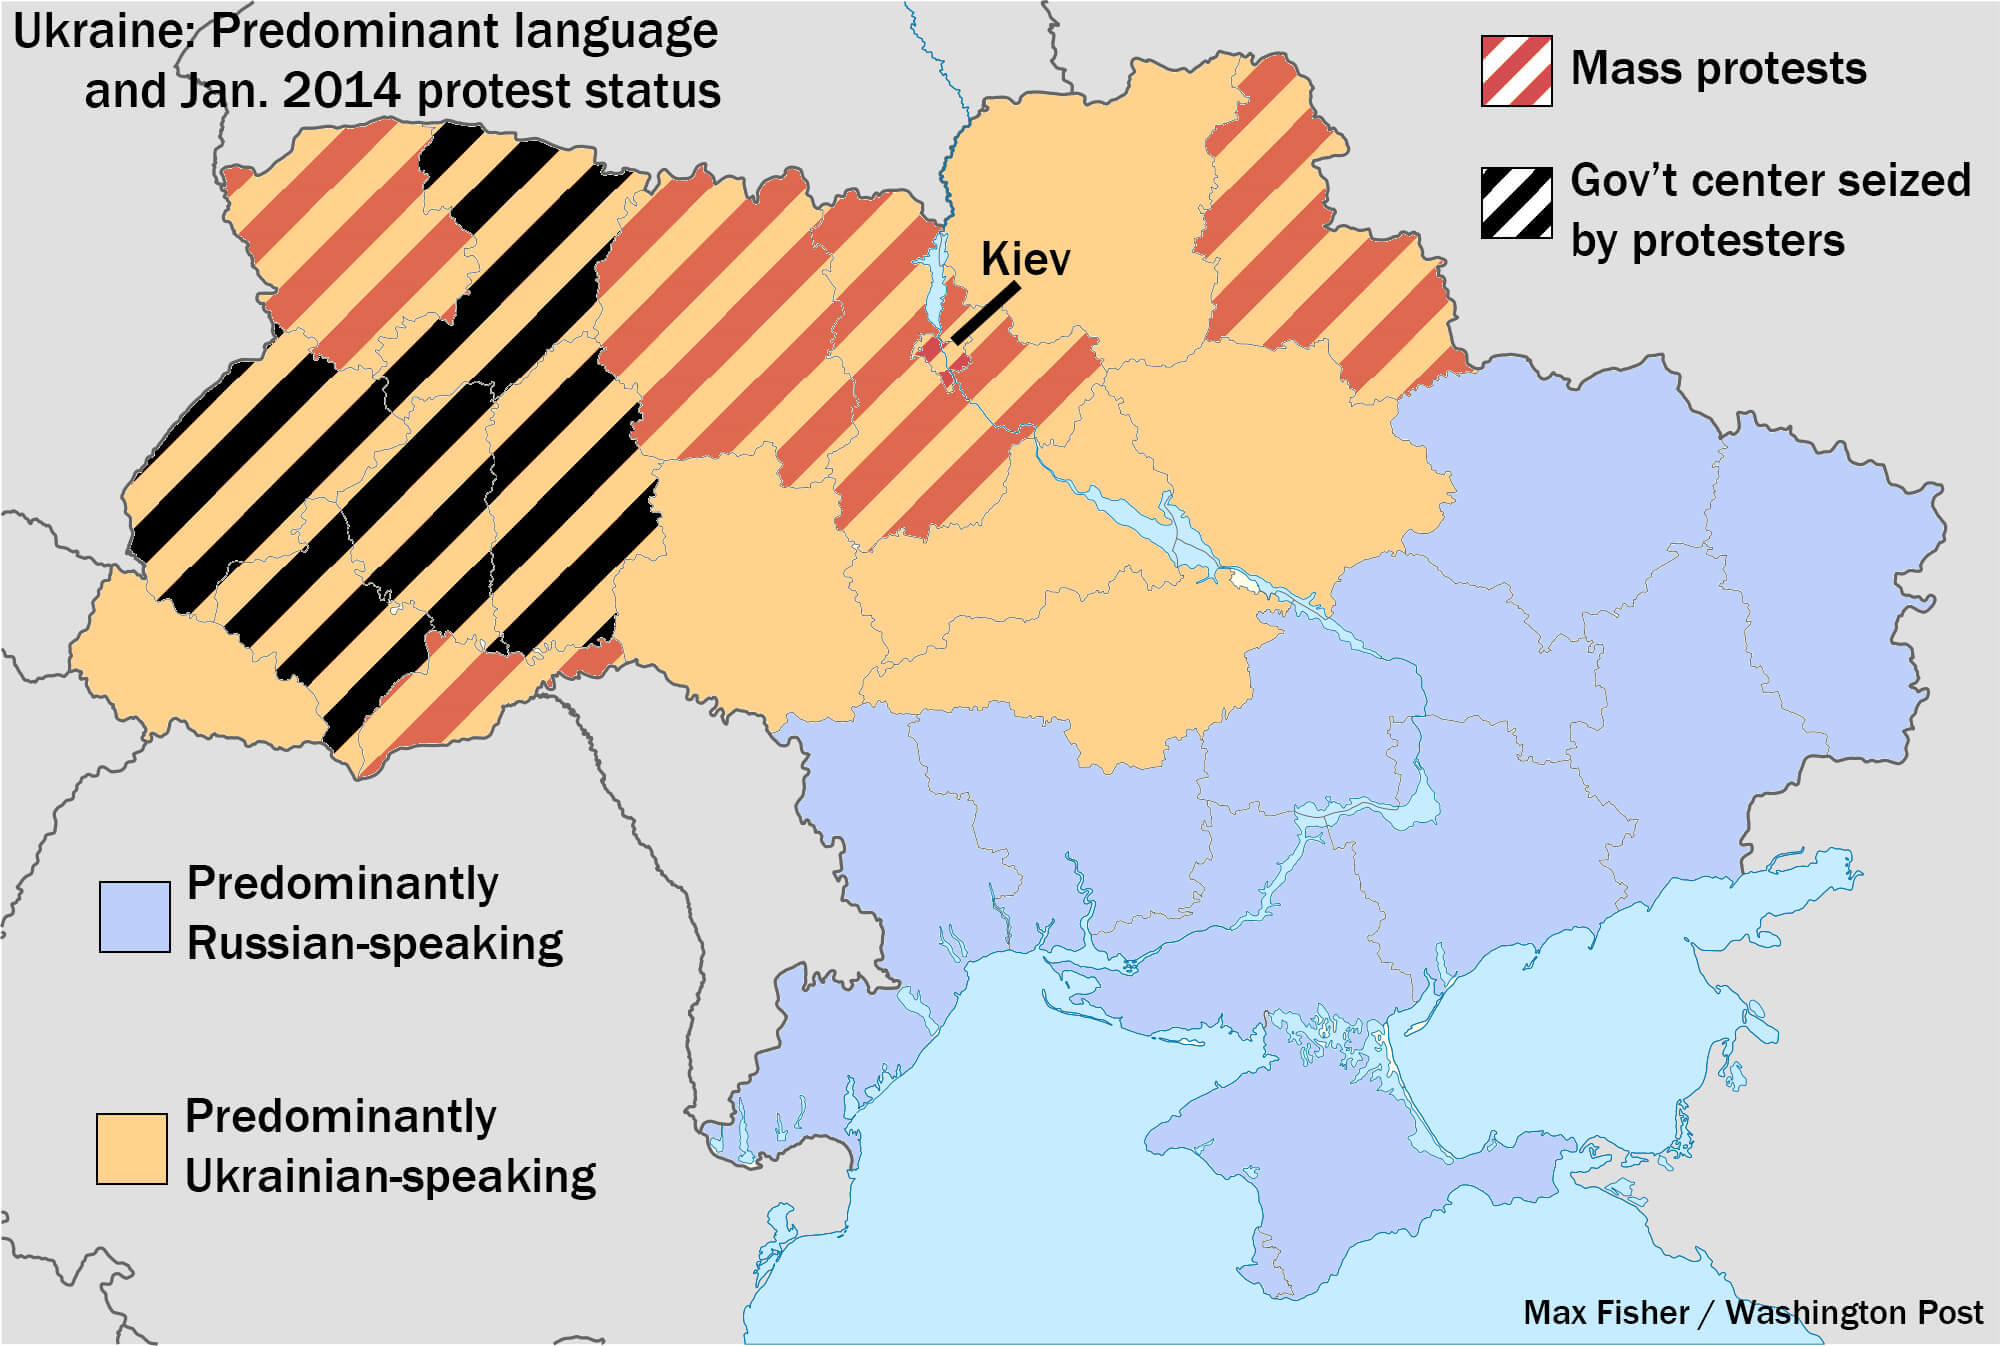 The tale of two ukraines the missing five million ukrainians and ukraine protests map by language k gumiabroncs Images